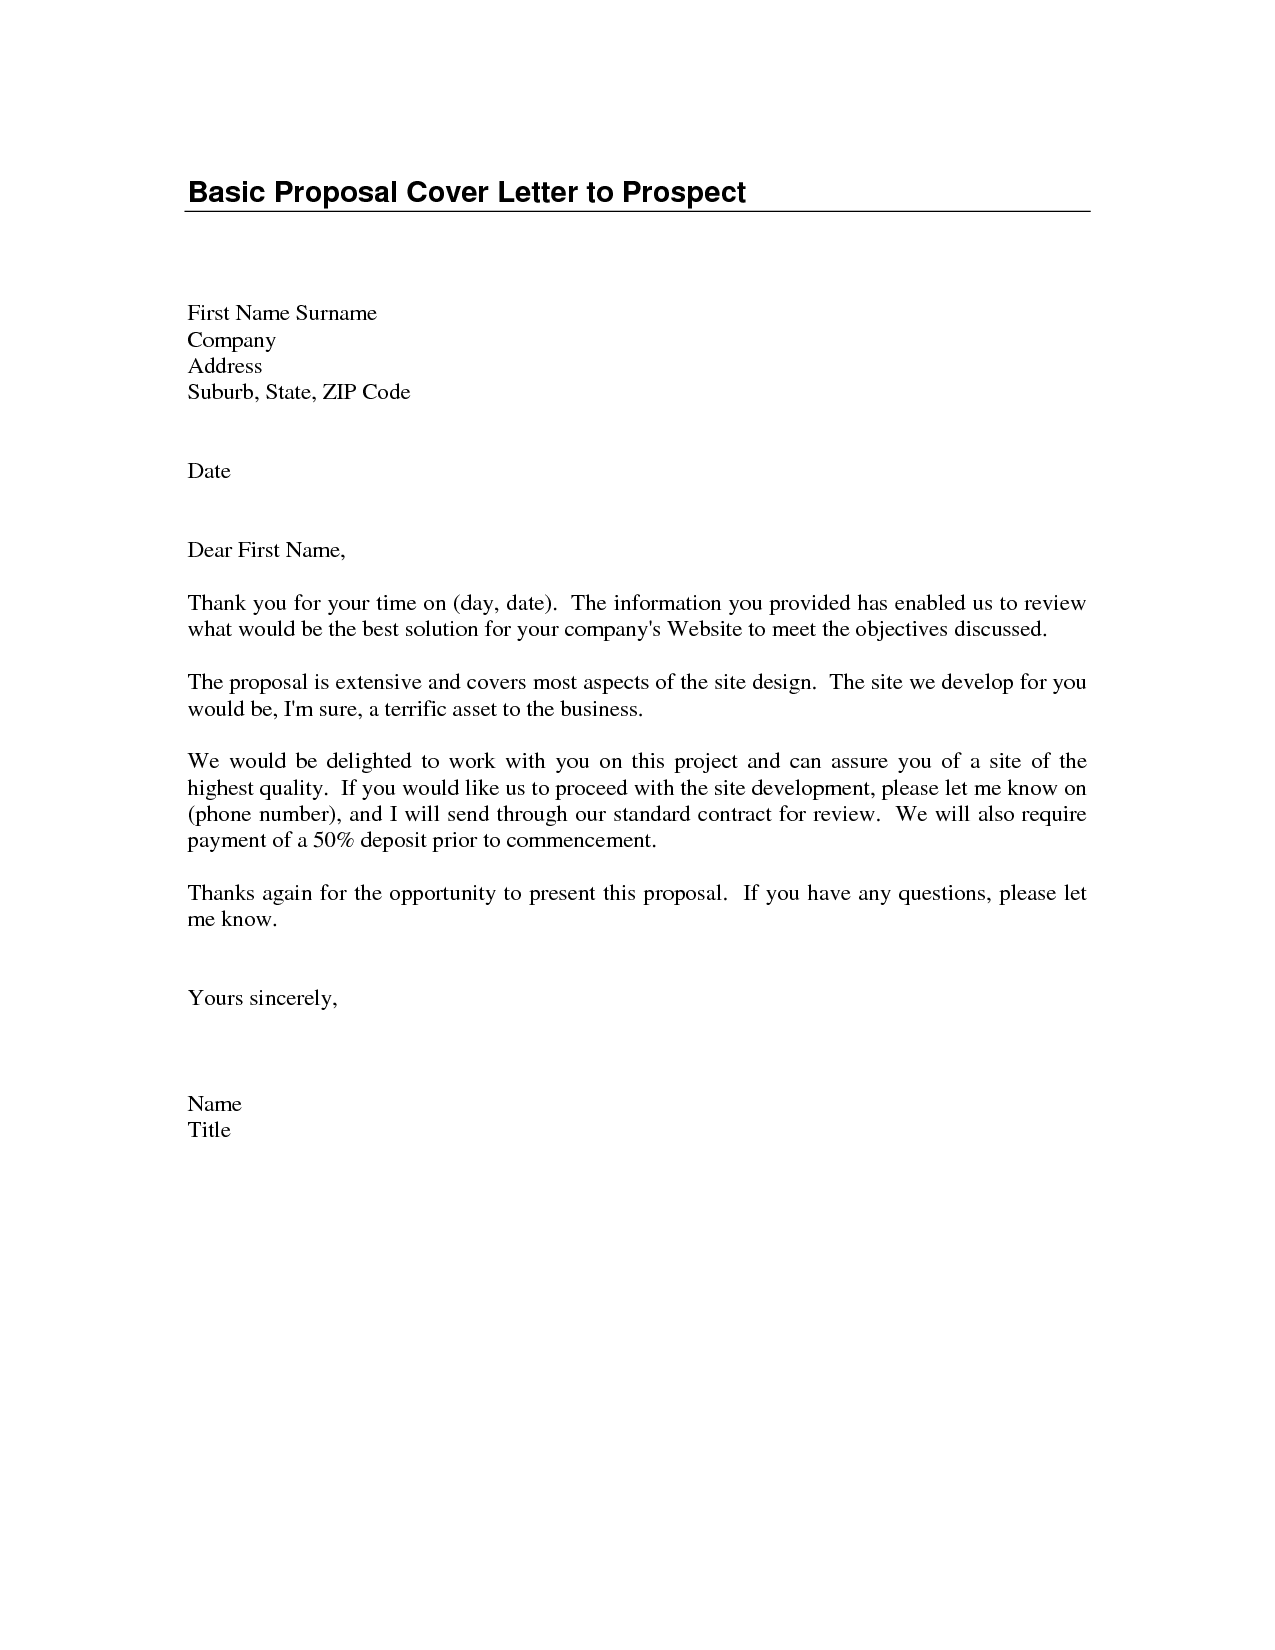 Basic Cover Letter Sample Basic Cover Letters Free Basicsimple